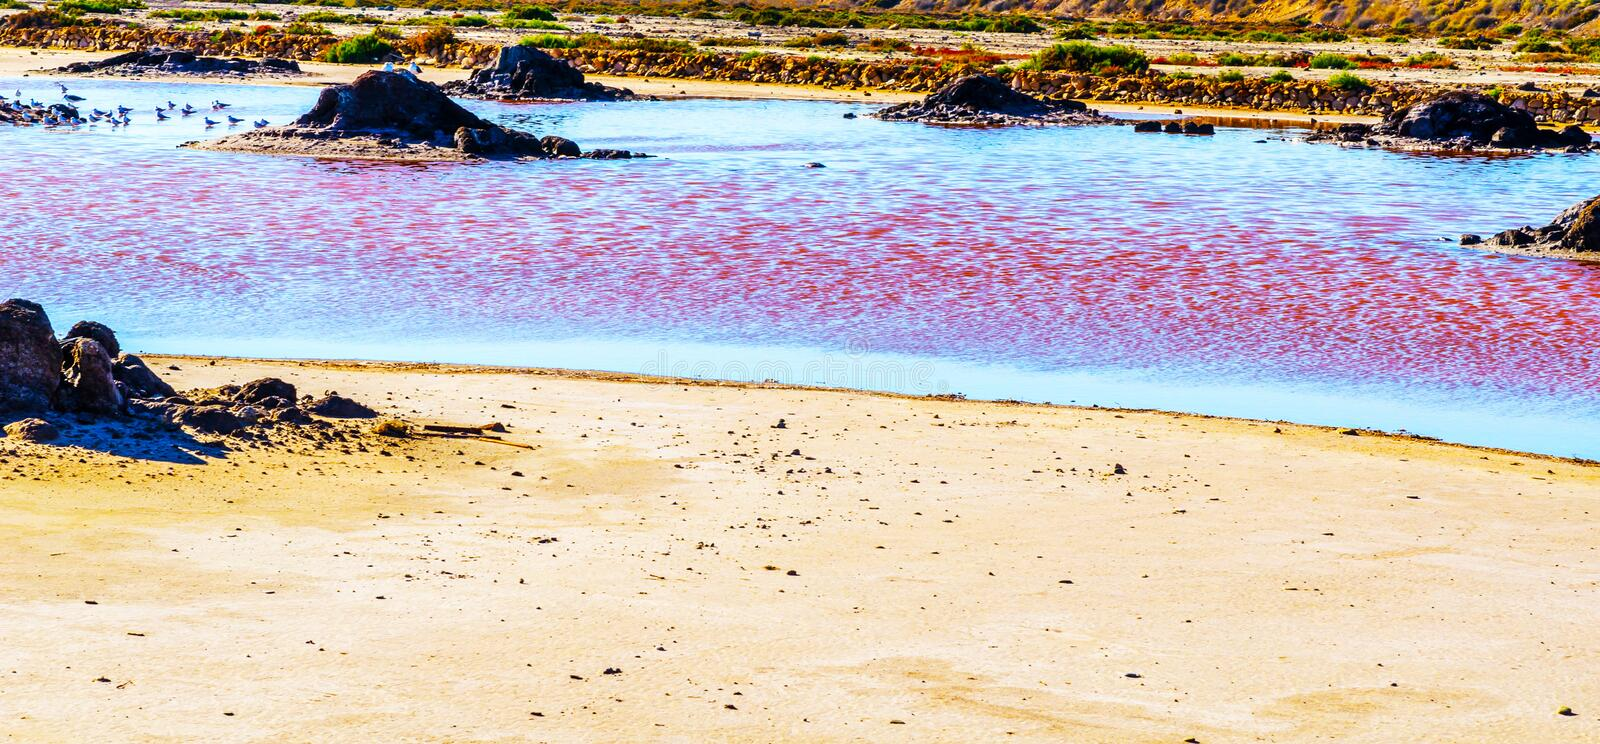 Pink lake in spain, unusual phenomenon, mineral influence on water. Rose river stock photo